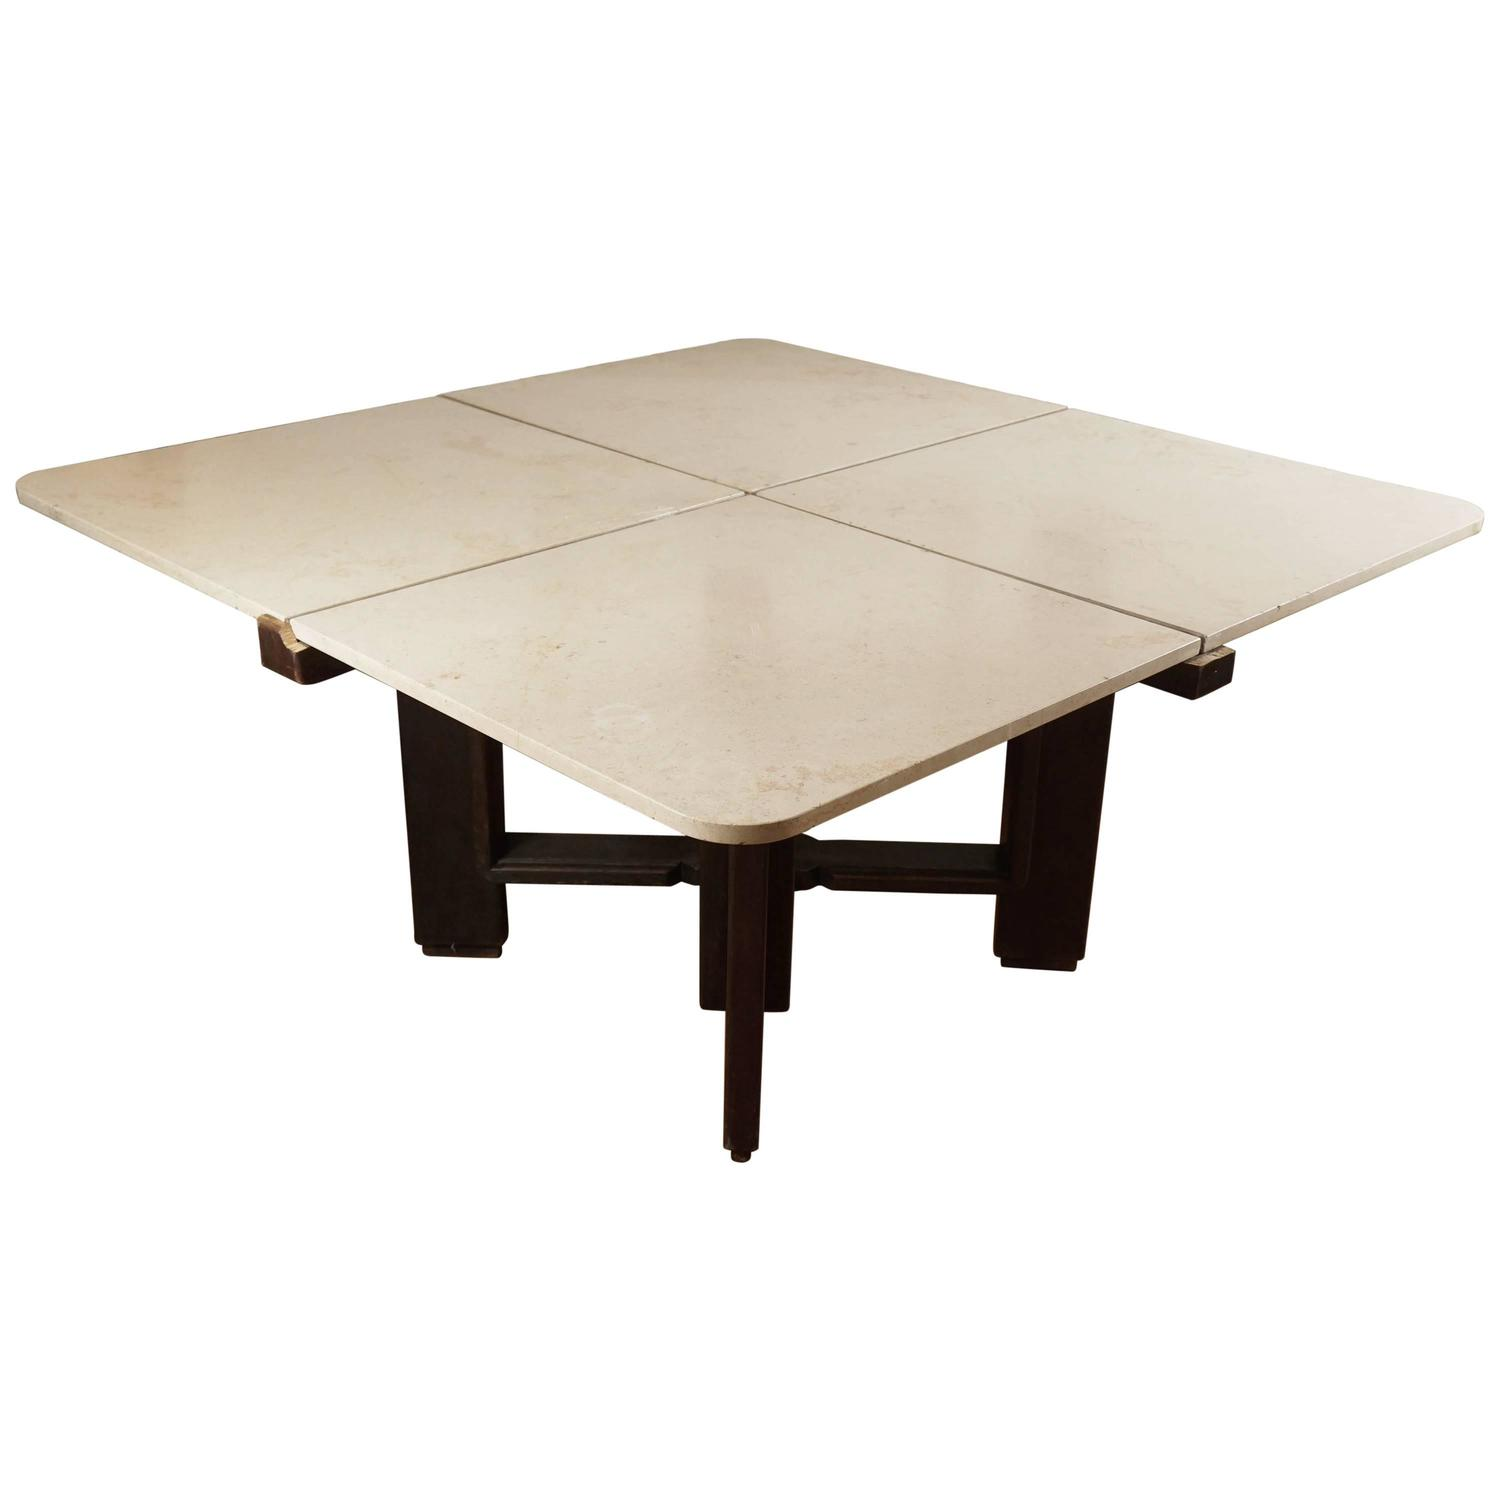 marble top dining table for sale at 1stdibs